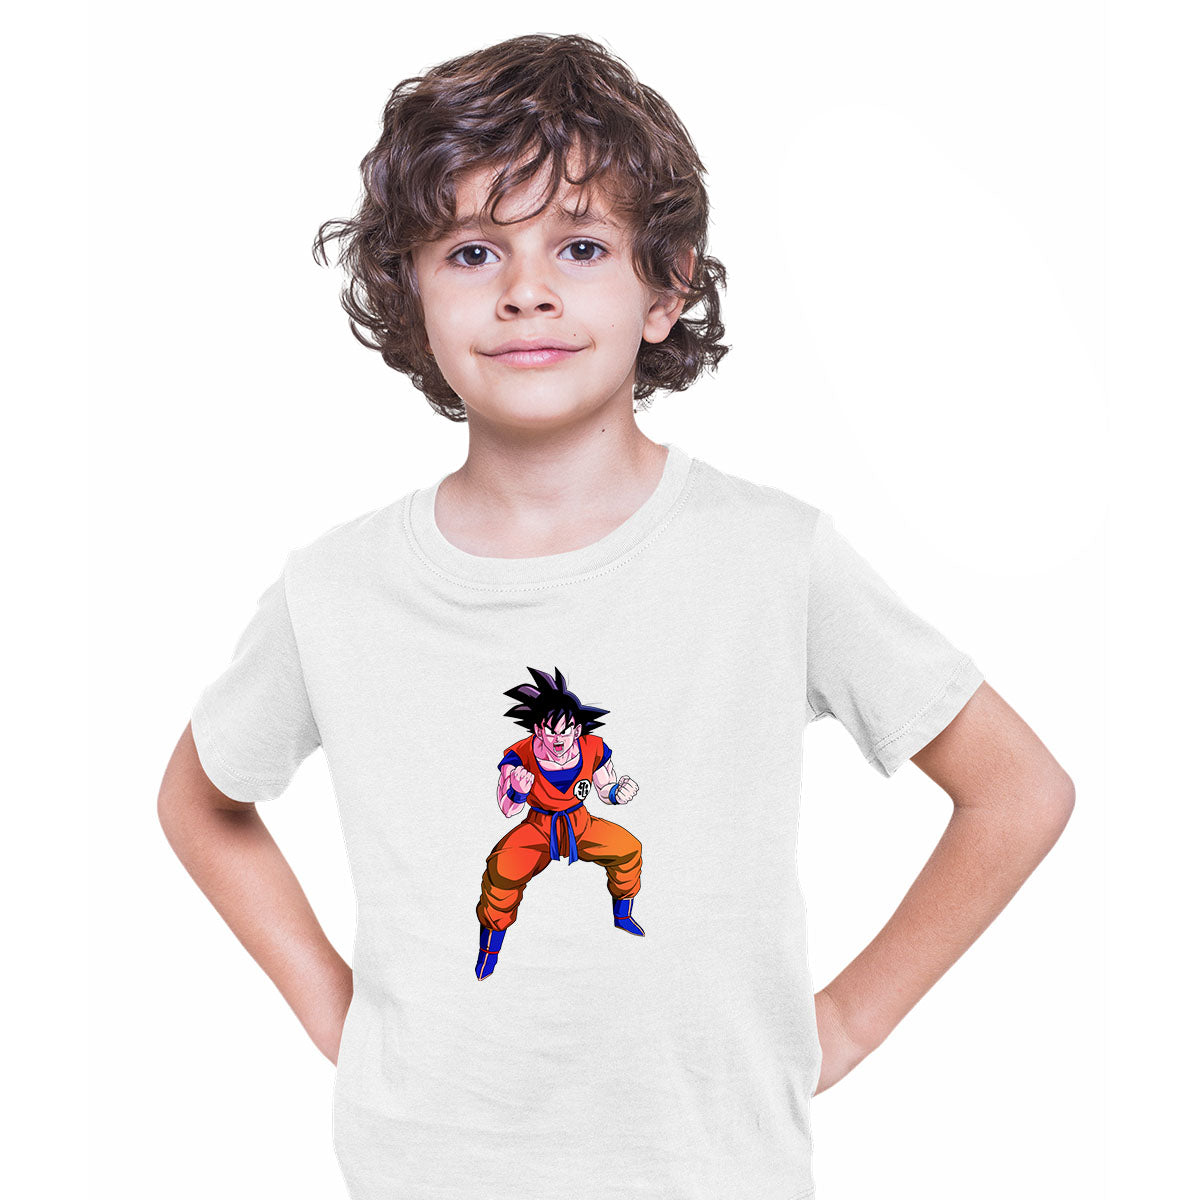 Dragon Ball Z Anime T-Shirt Goku Saiyan Power Level Bioworld White T-shirt for Kids